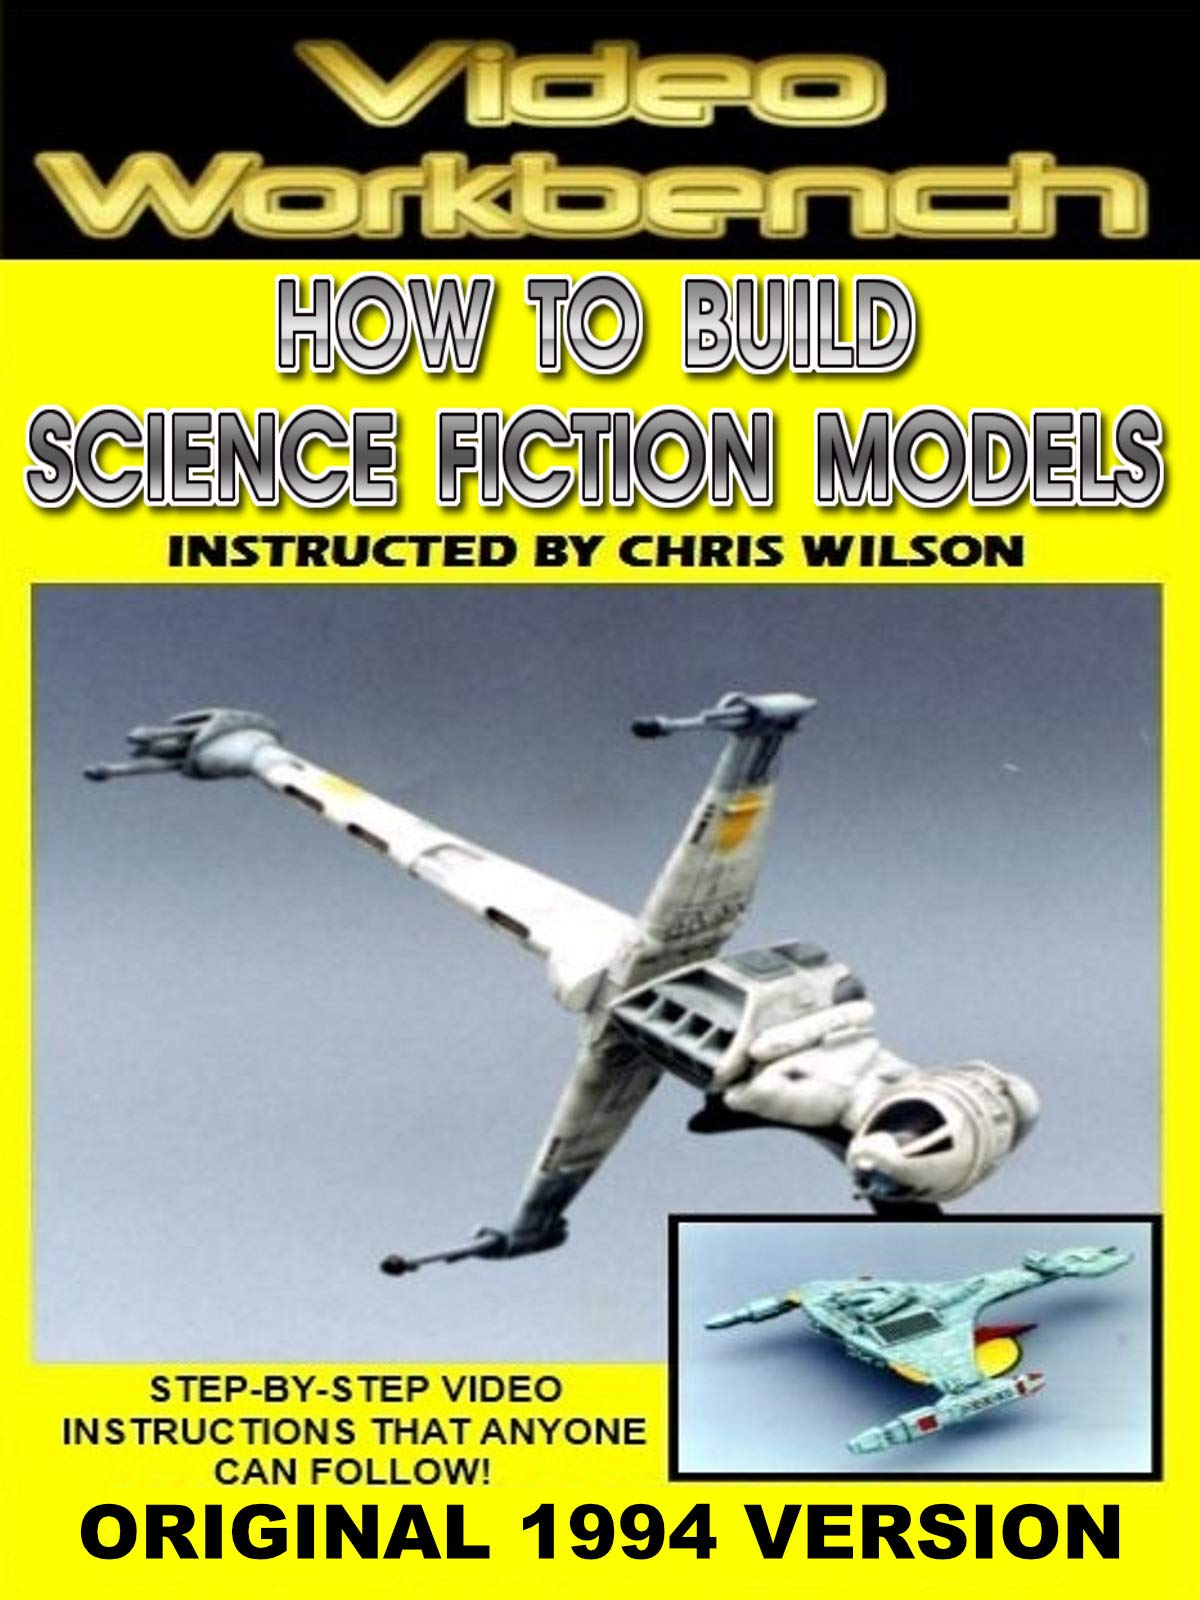 Video Workbench: How to Build Science Fiction Models (1994 Original) on Amazon Prime Video UK